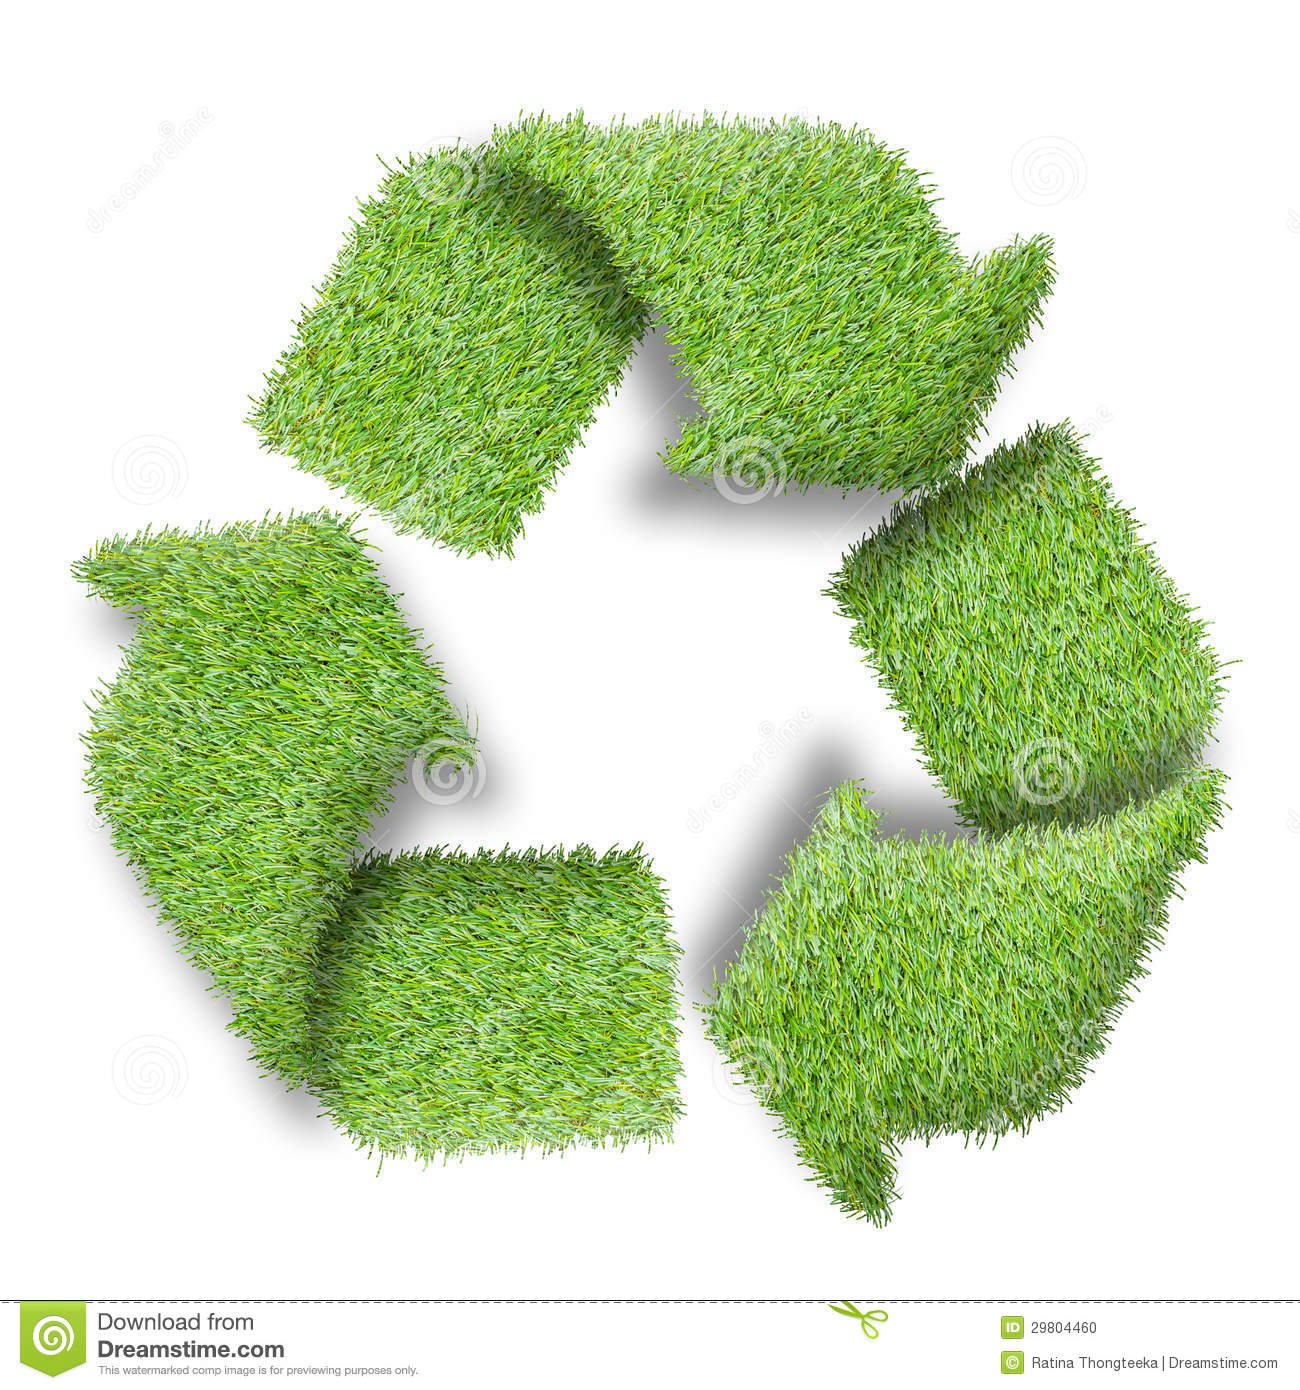 Recycle Logo Symbol From The Green Grass Stock Photo Image